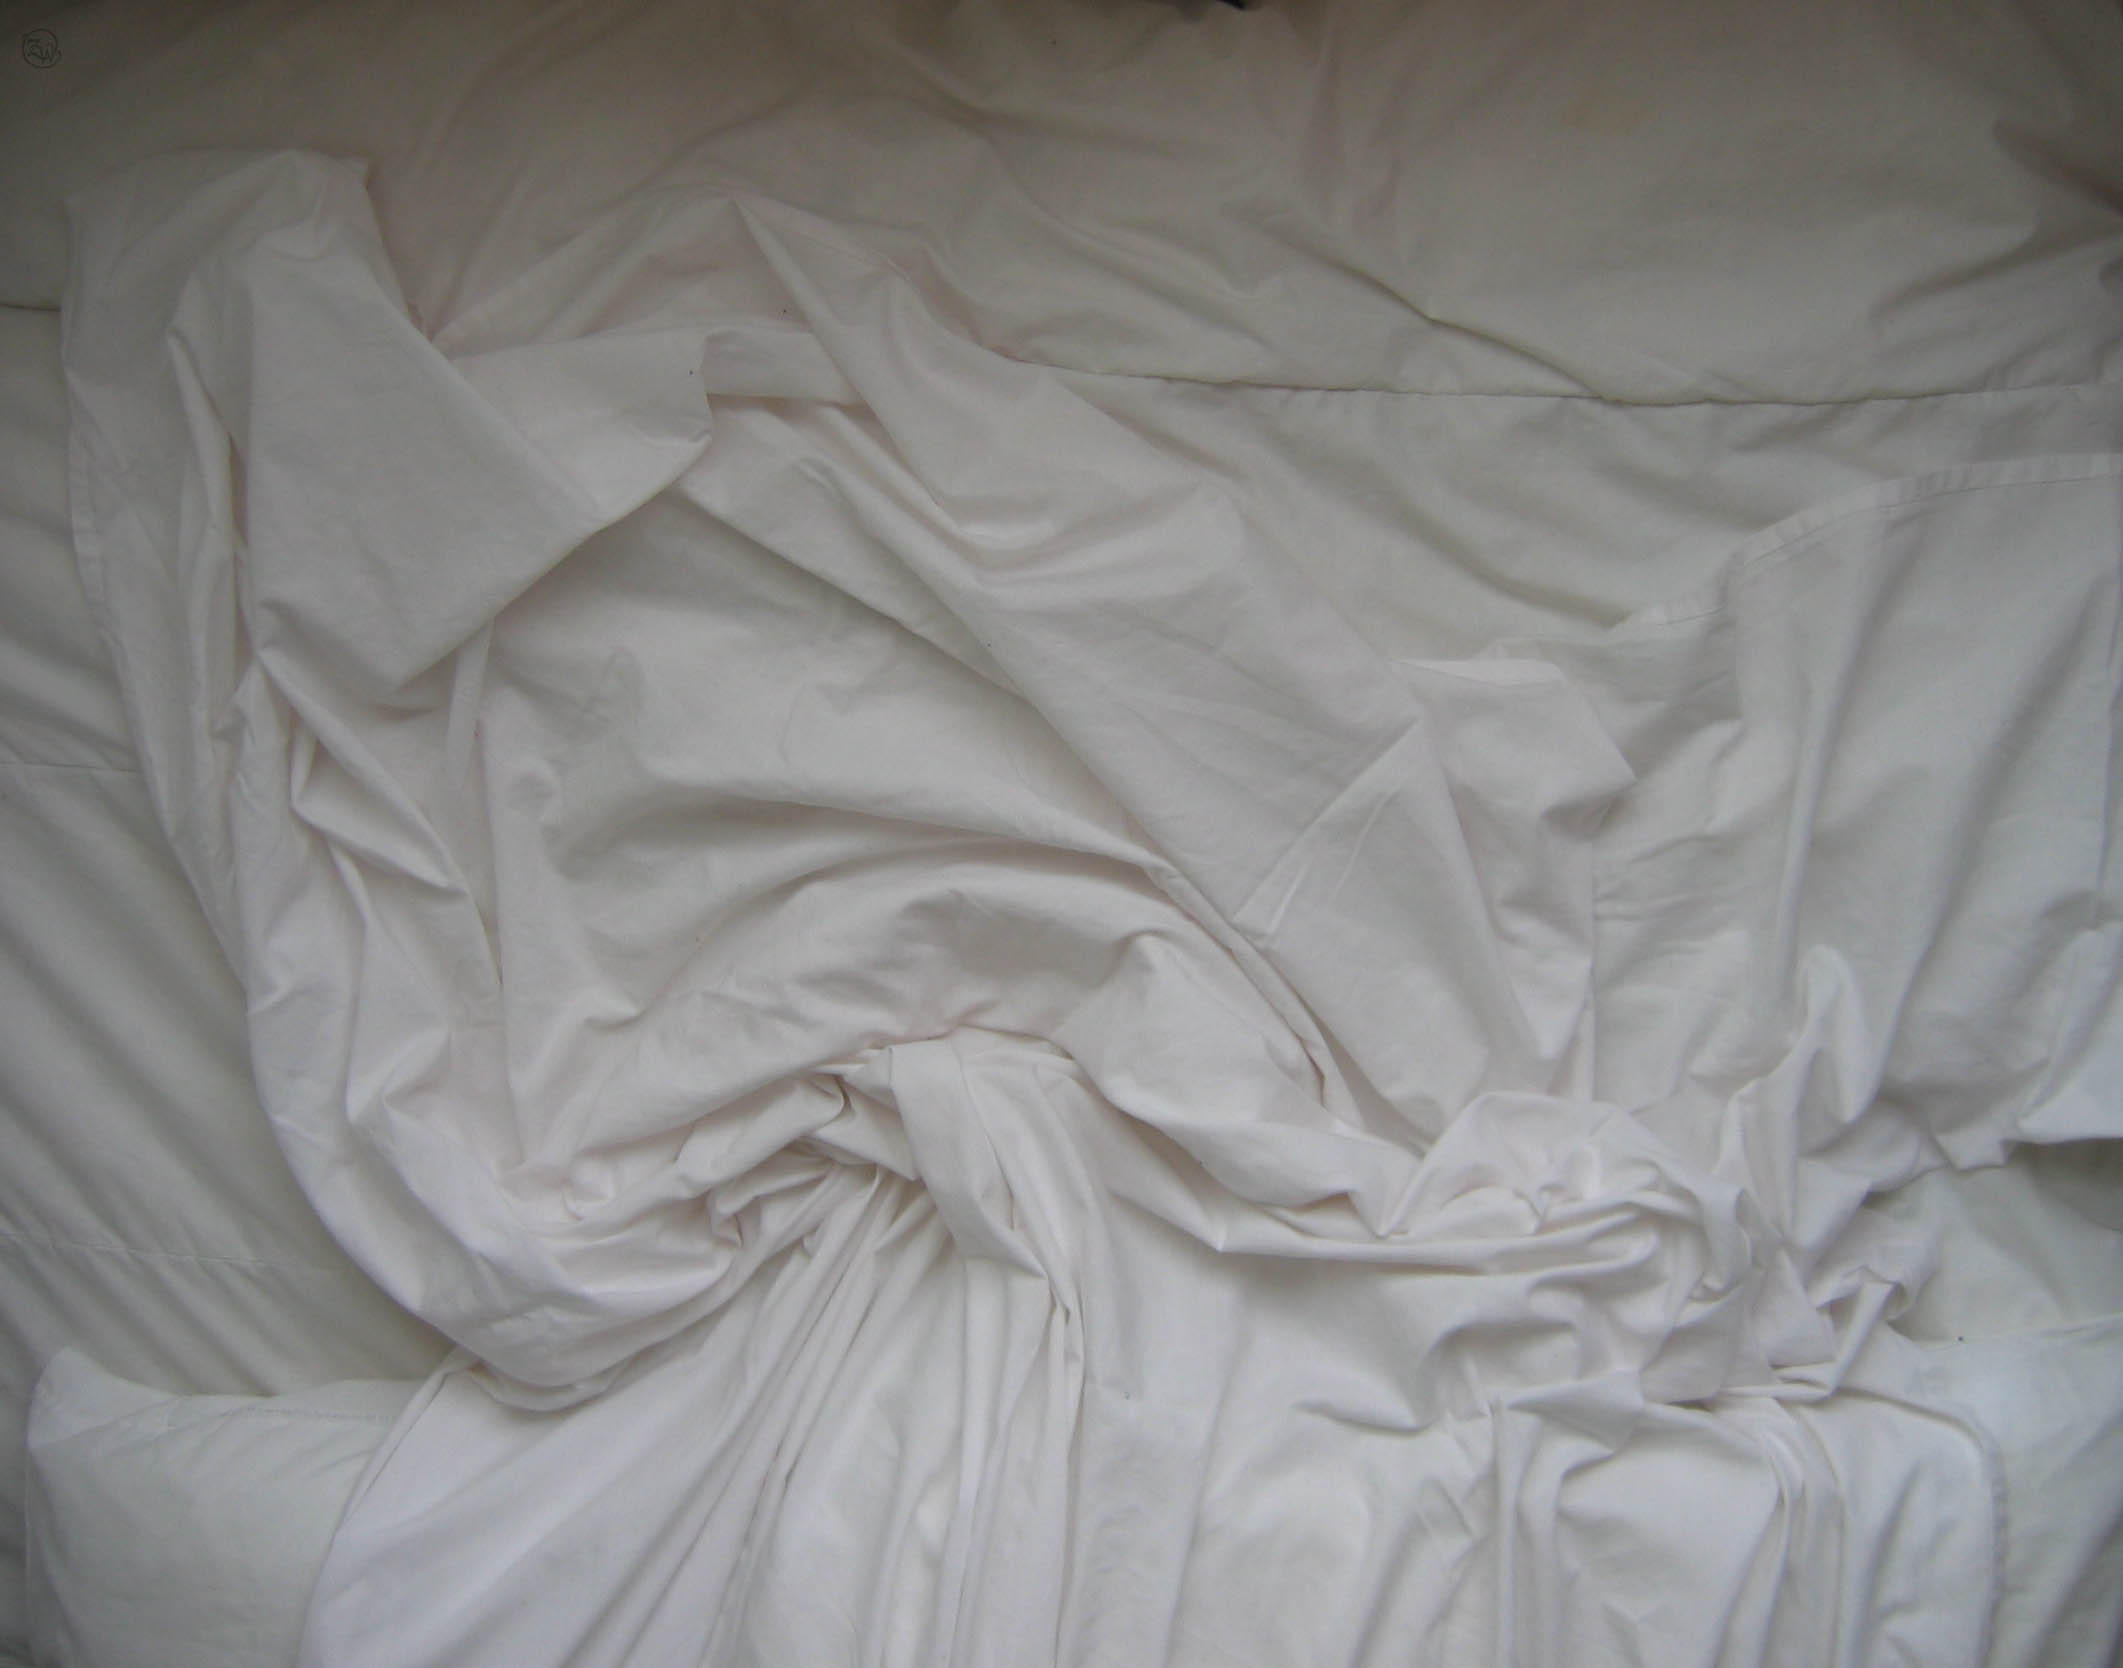 White Bed Sheets Tumblr Wallpaper